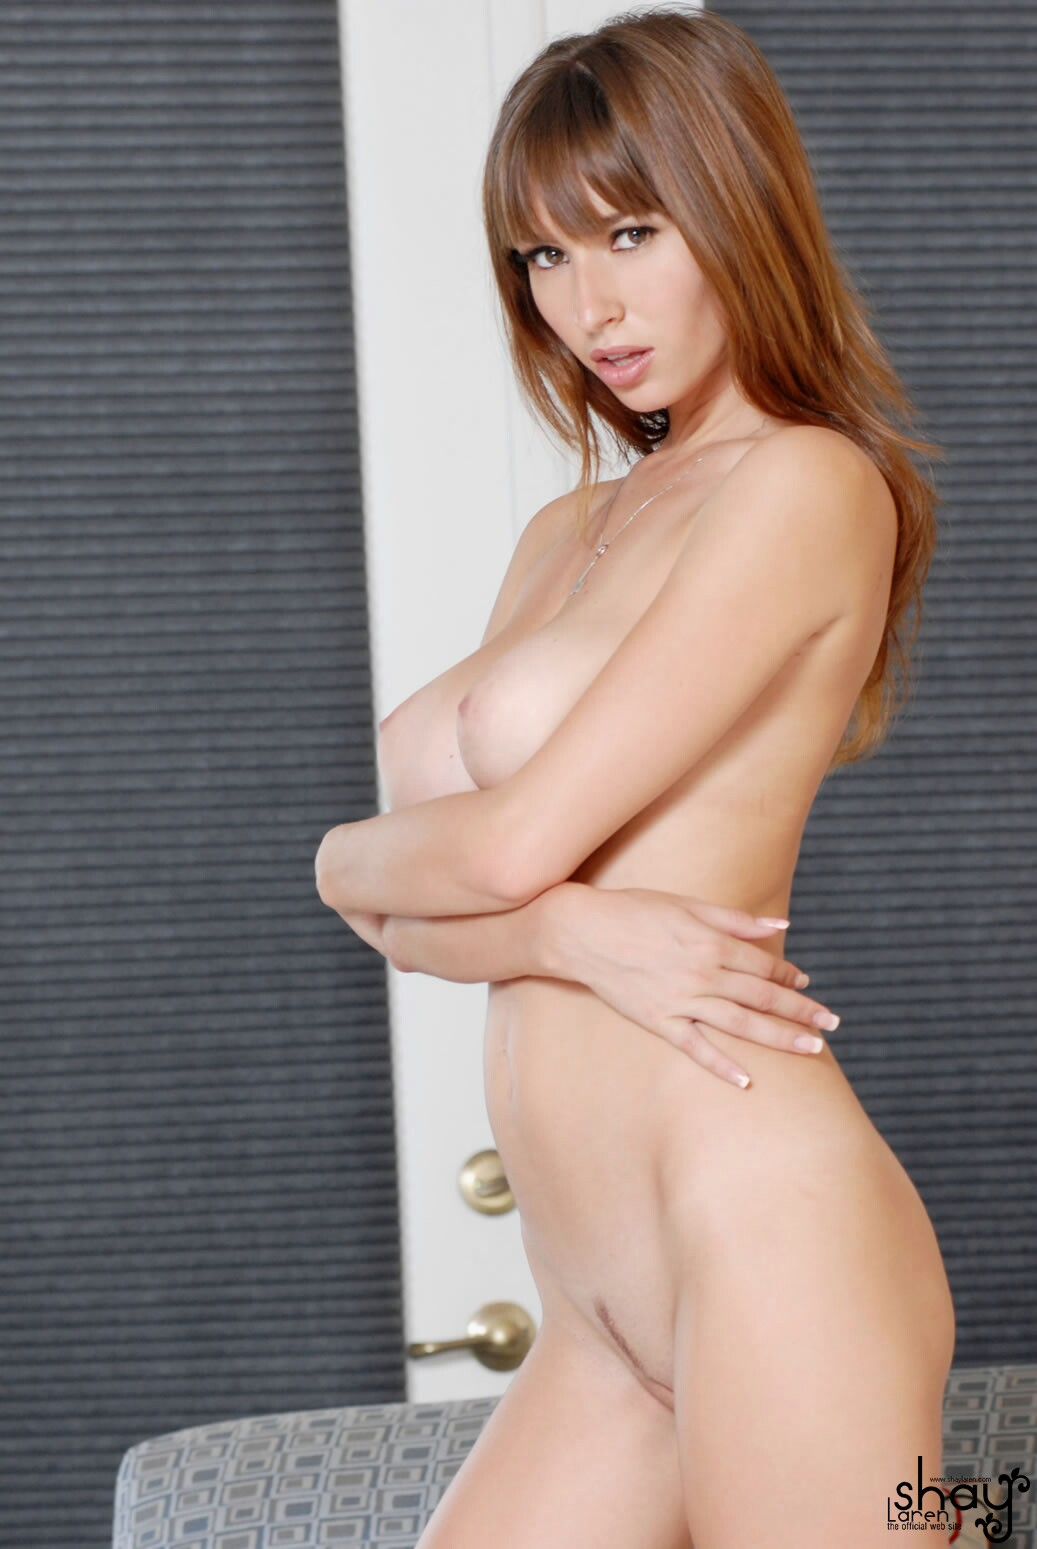 Shay Laren In Just Her Bra And Panties 4699  page 2